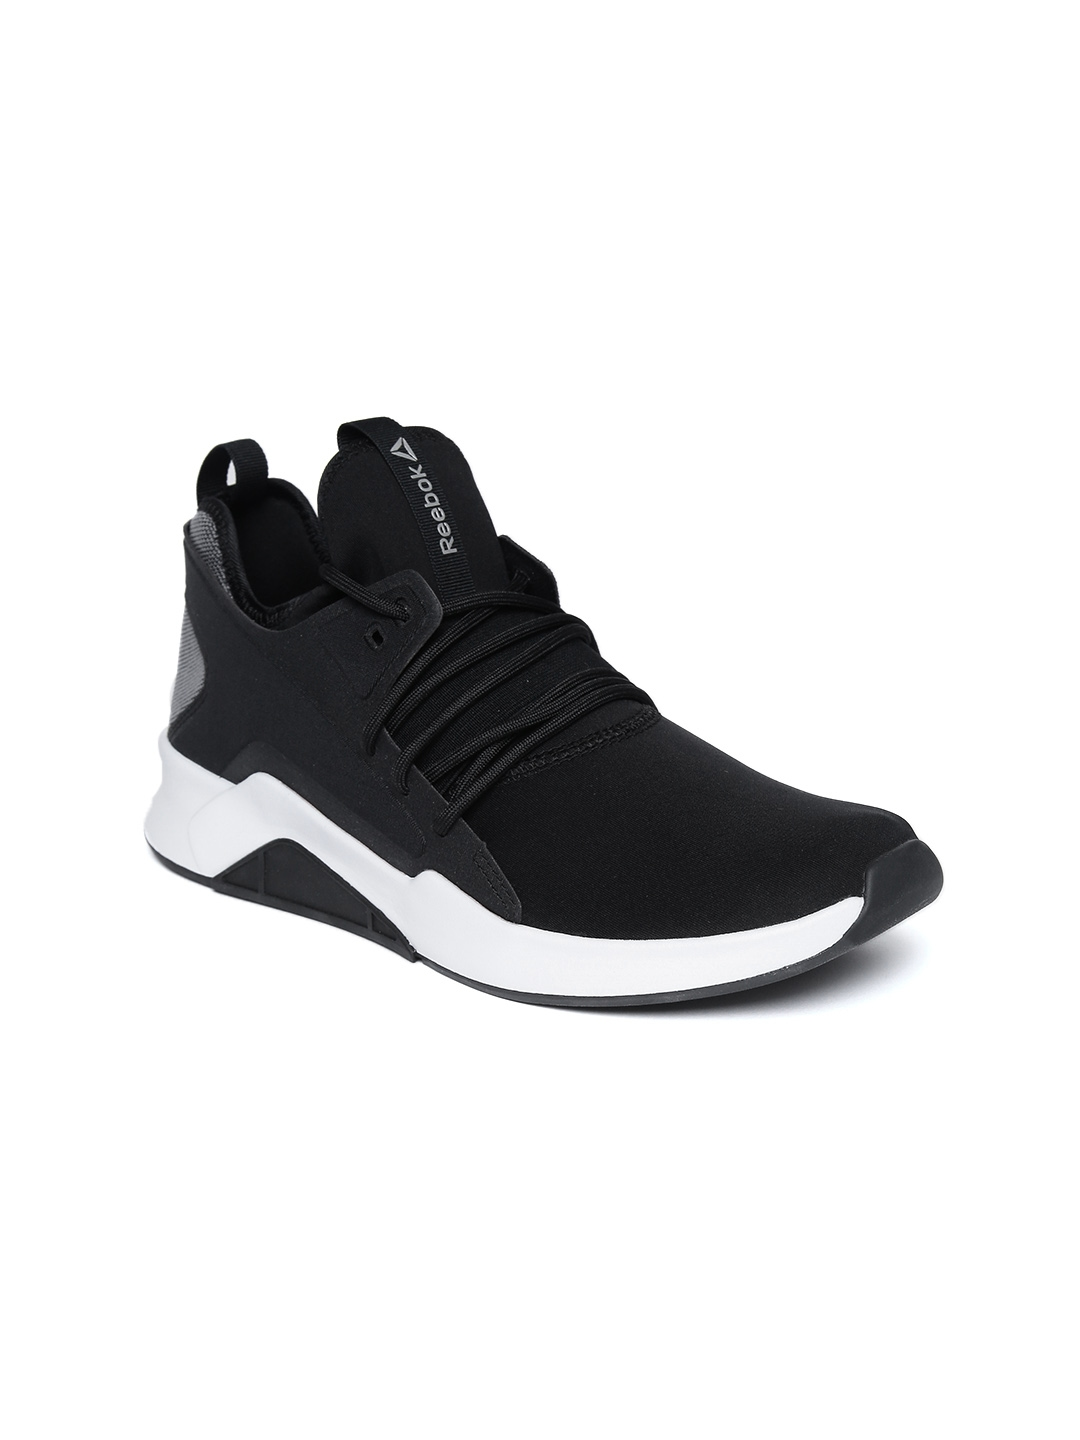 8d0e2aadbabf Buy Reebok Women Black GURESU 2.0 Aerobics Shoes - Sports Shoes for ...